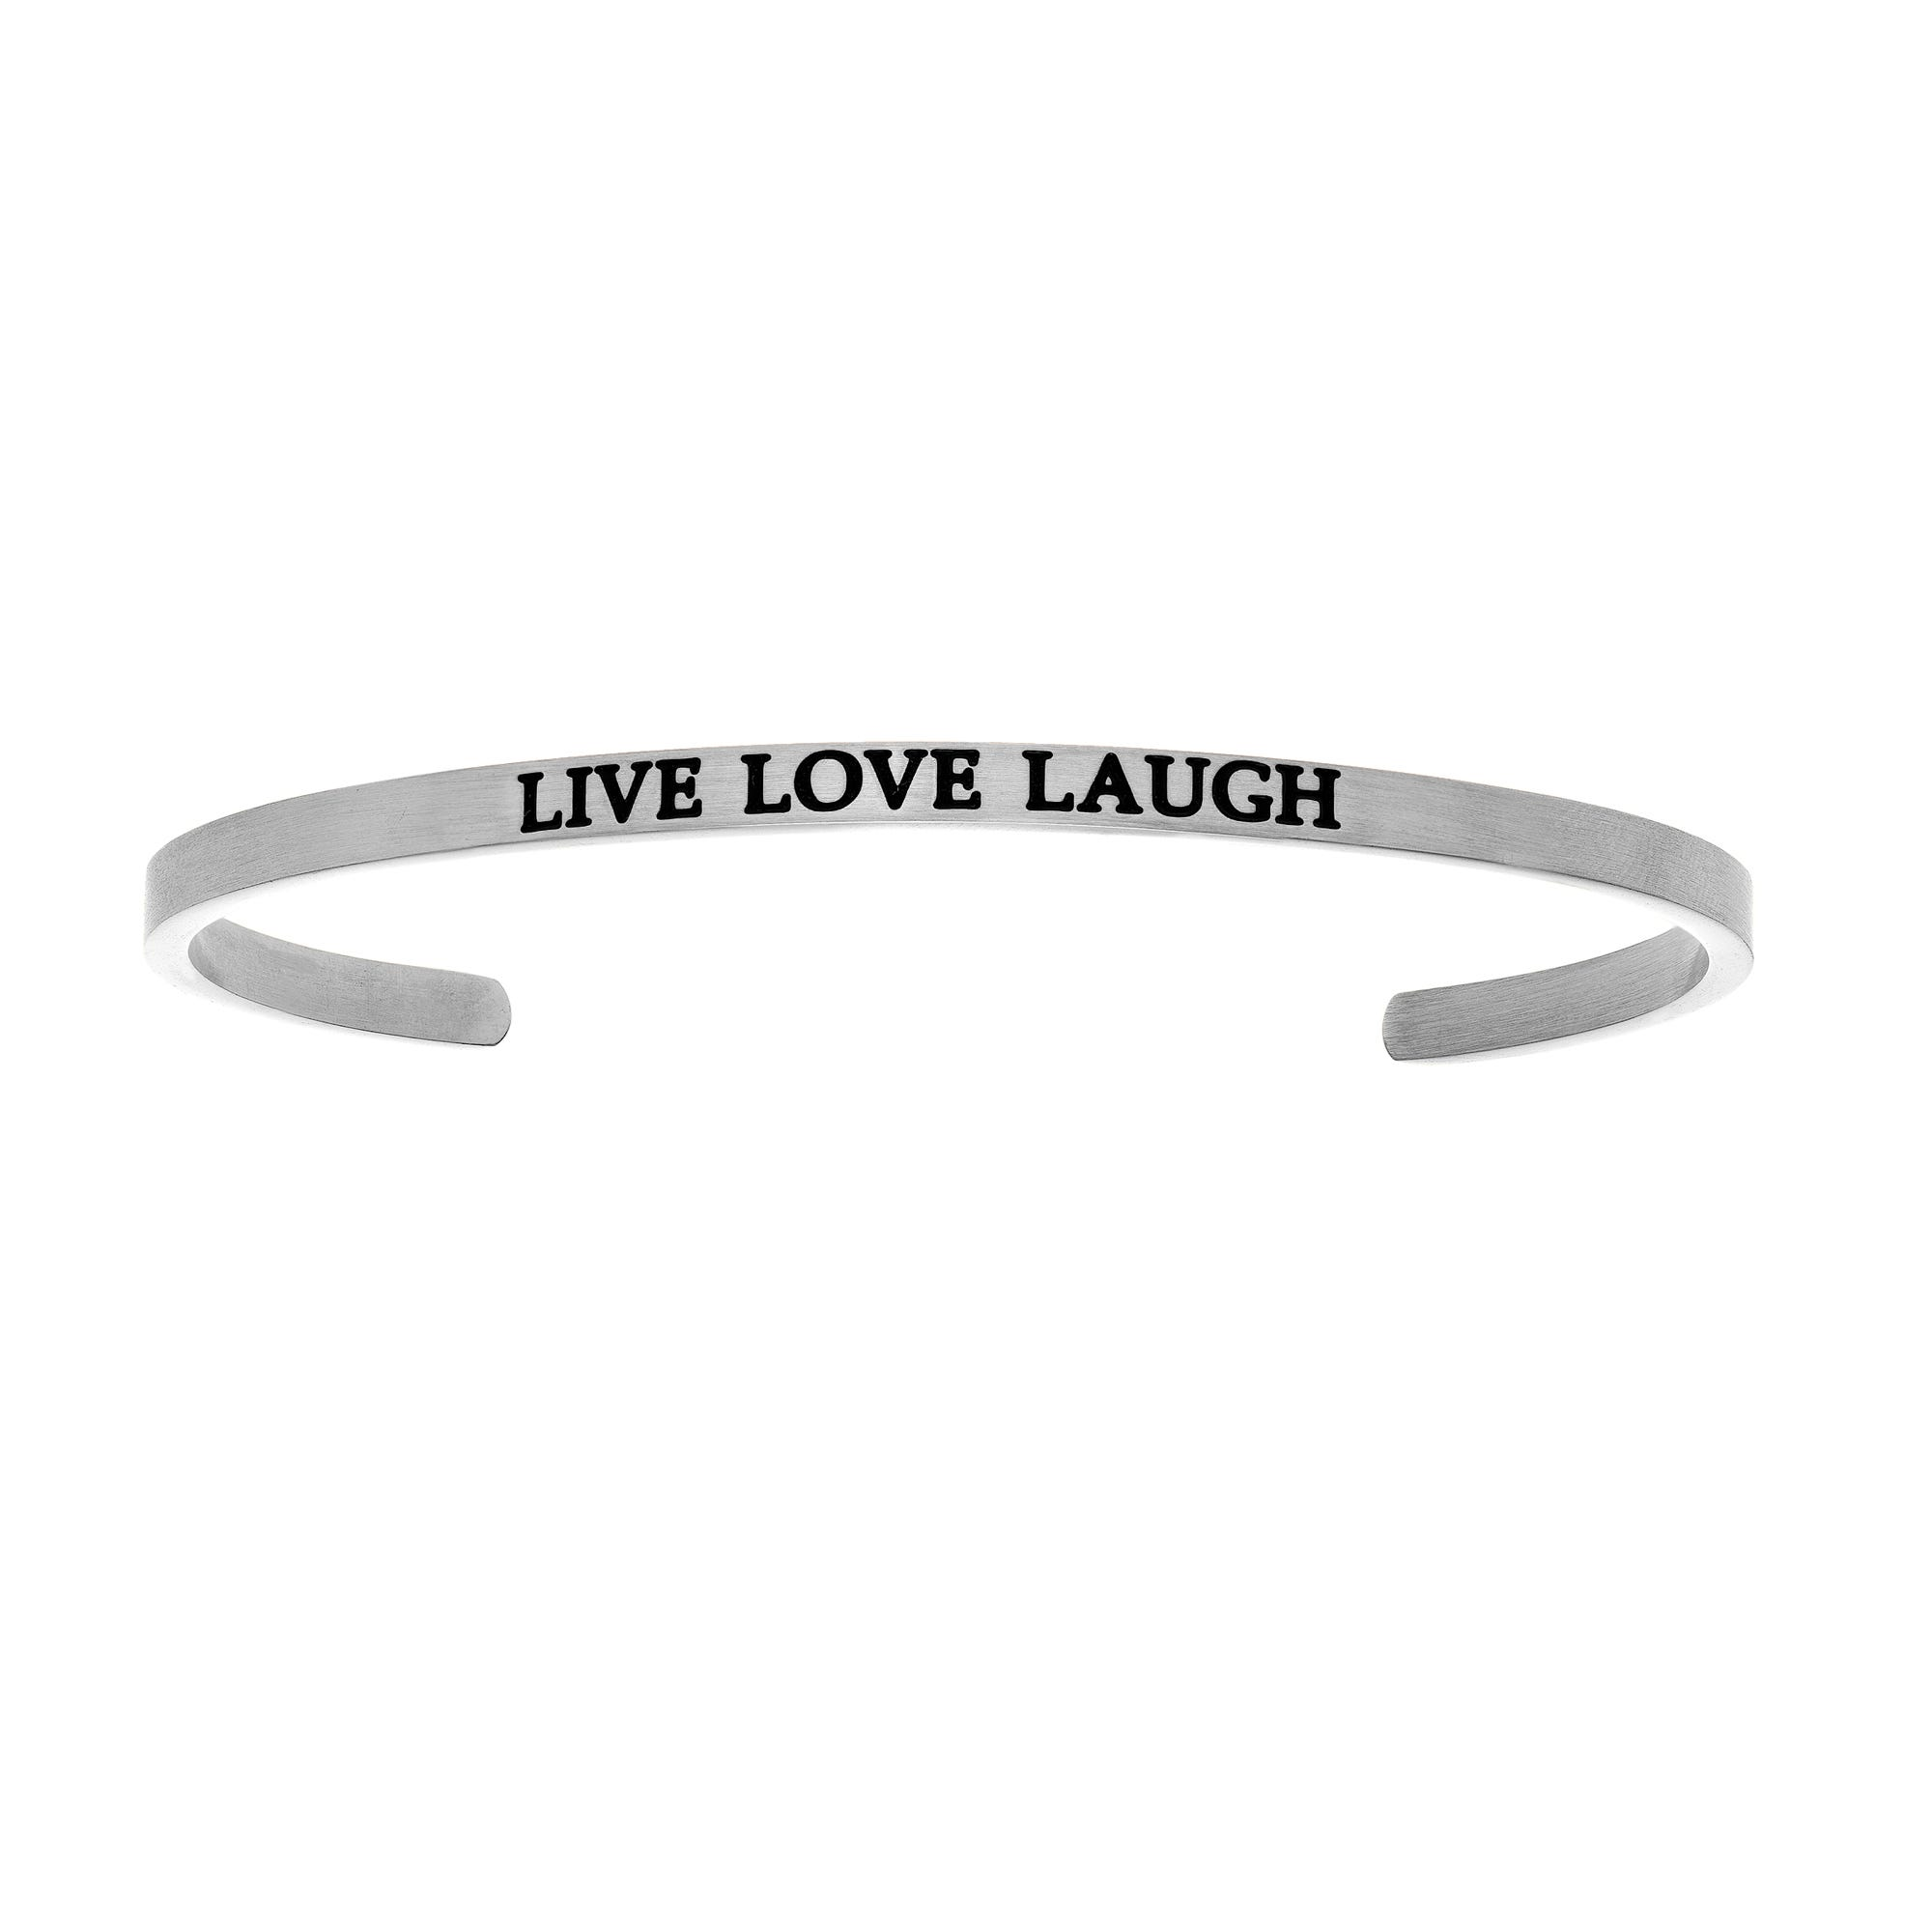 Live, Love, Laugh. Intuitions Cuff Bracelet in White Stainless Steel